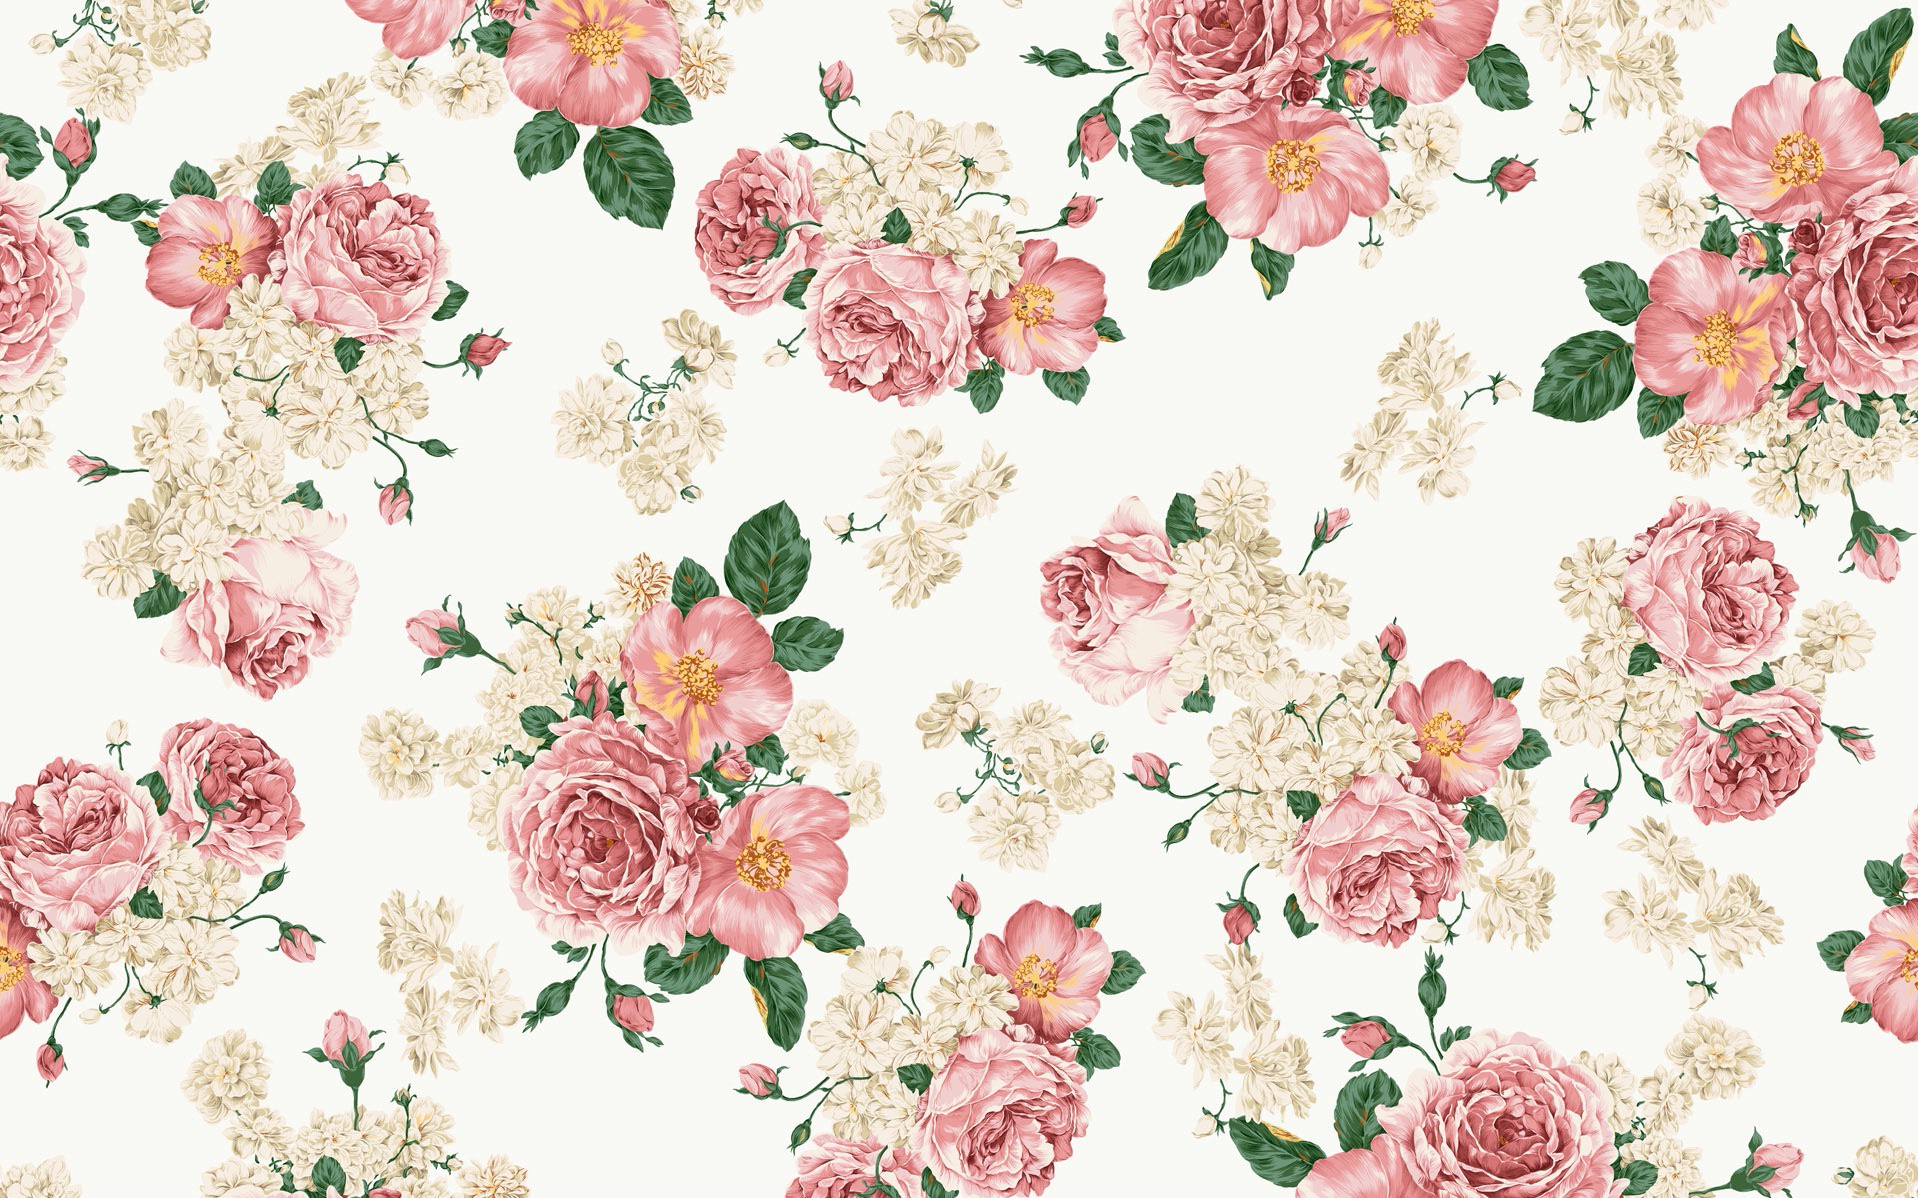 Floral Print Wallpapers Group (51+)